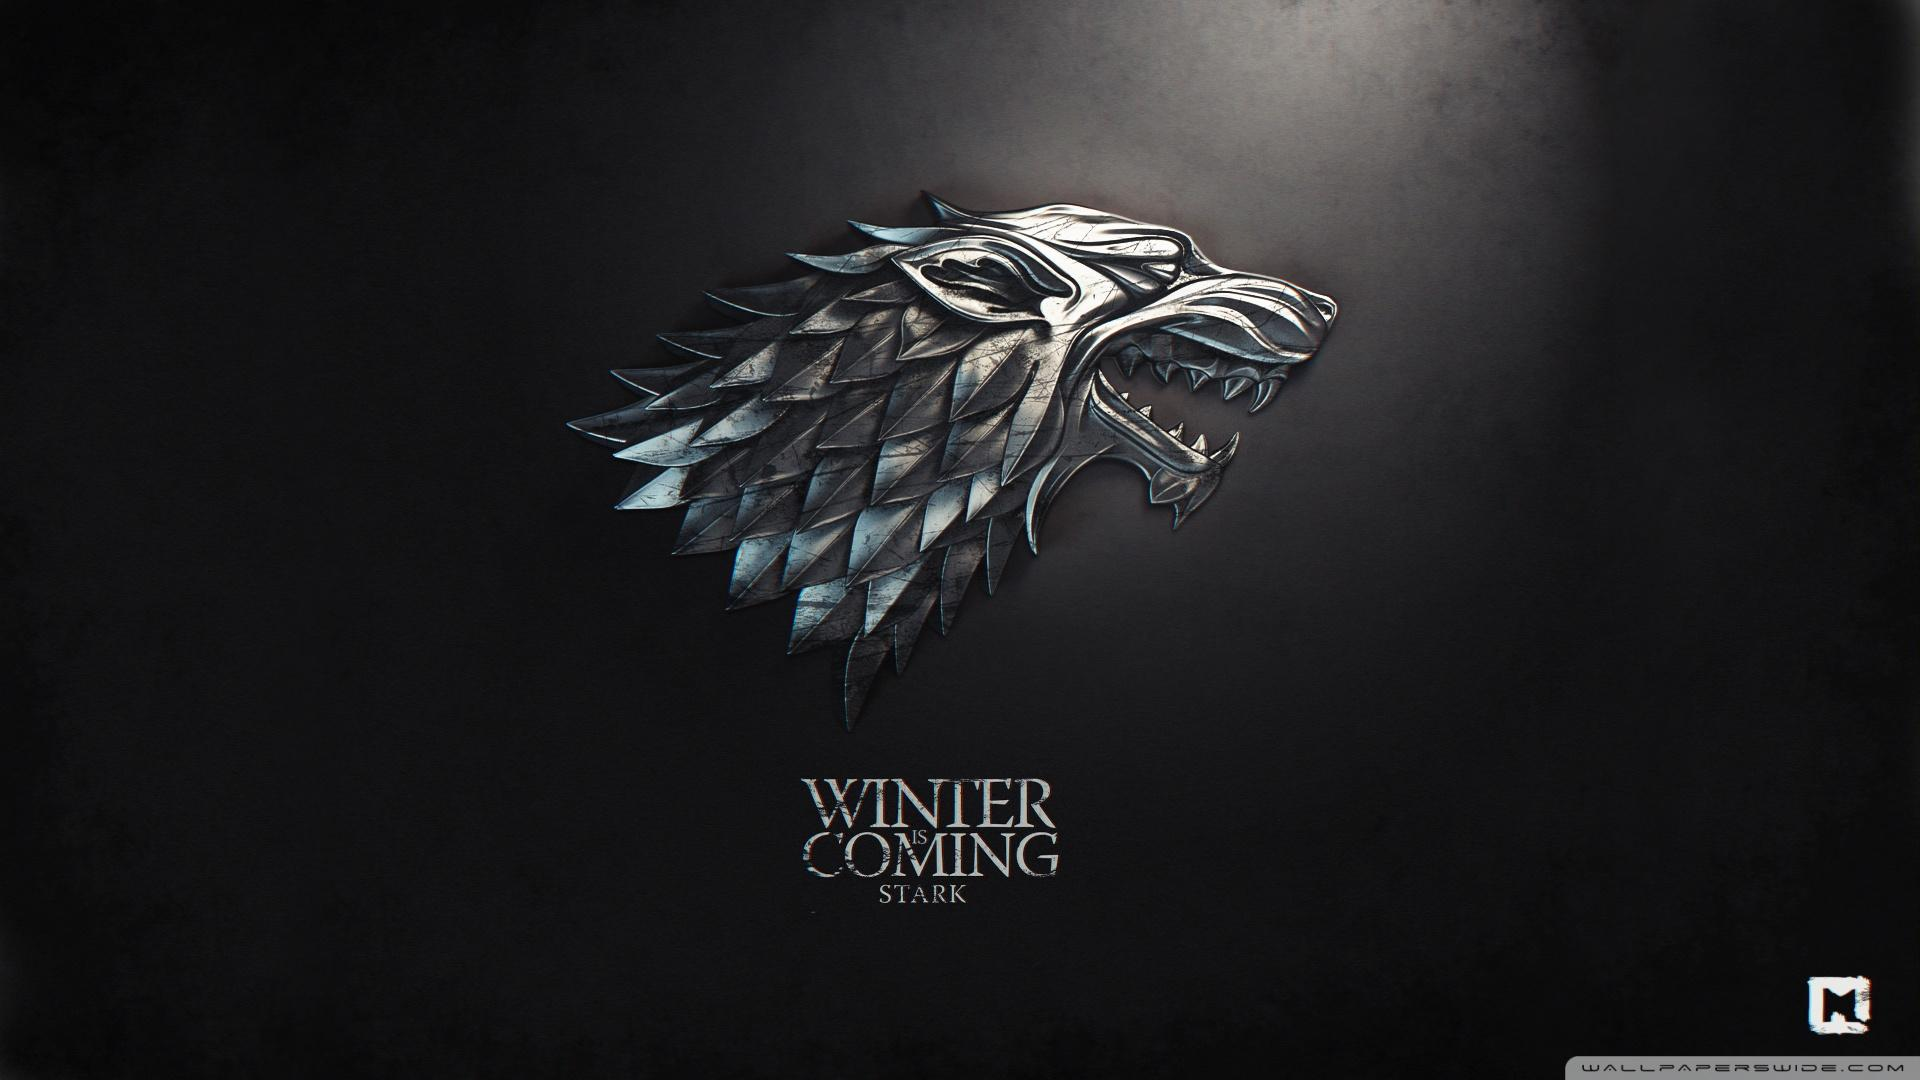 Download Game Of Thrones Wallpaper Hd Backgrounds Download